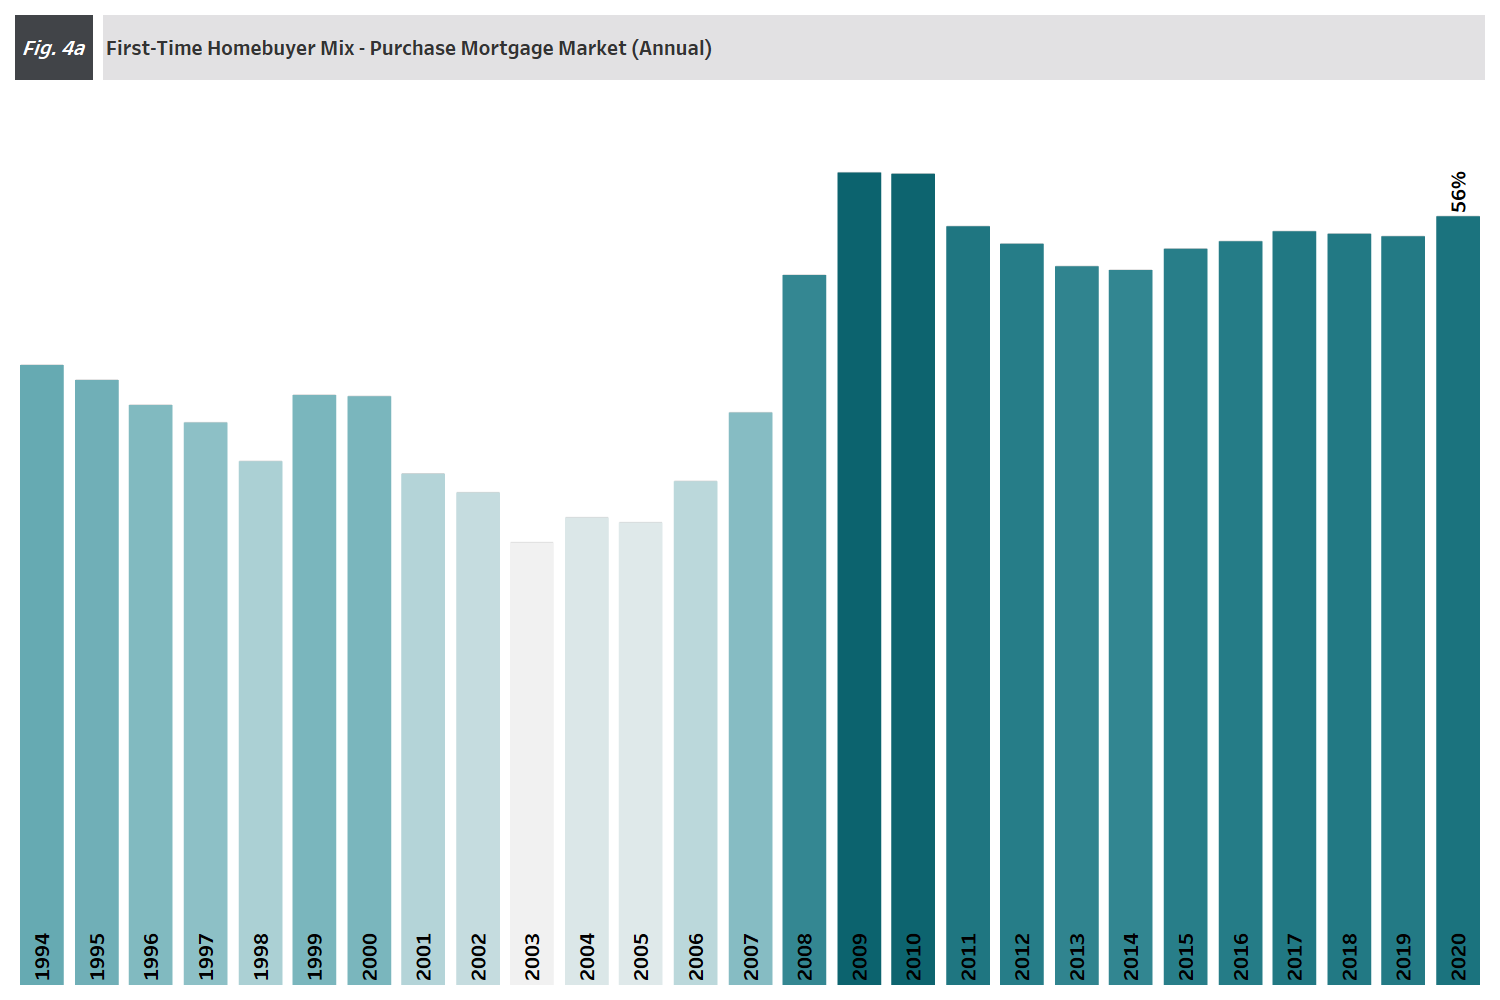 Chart: 4Q 2020 Figure 4a - Annual First-Time Homebuyer Purchase Mortgage Market Mix